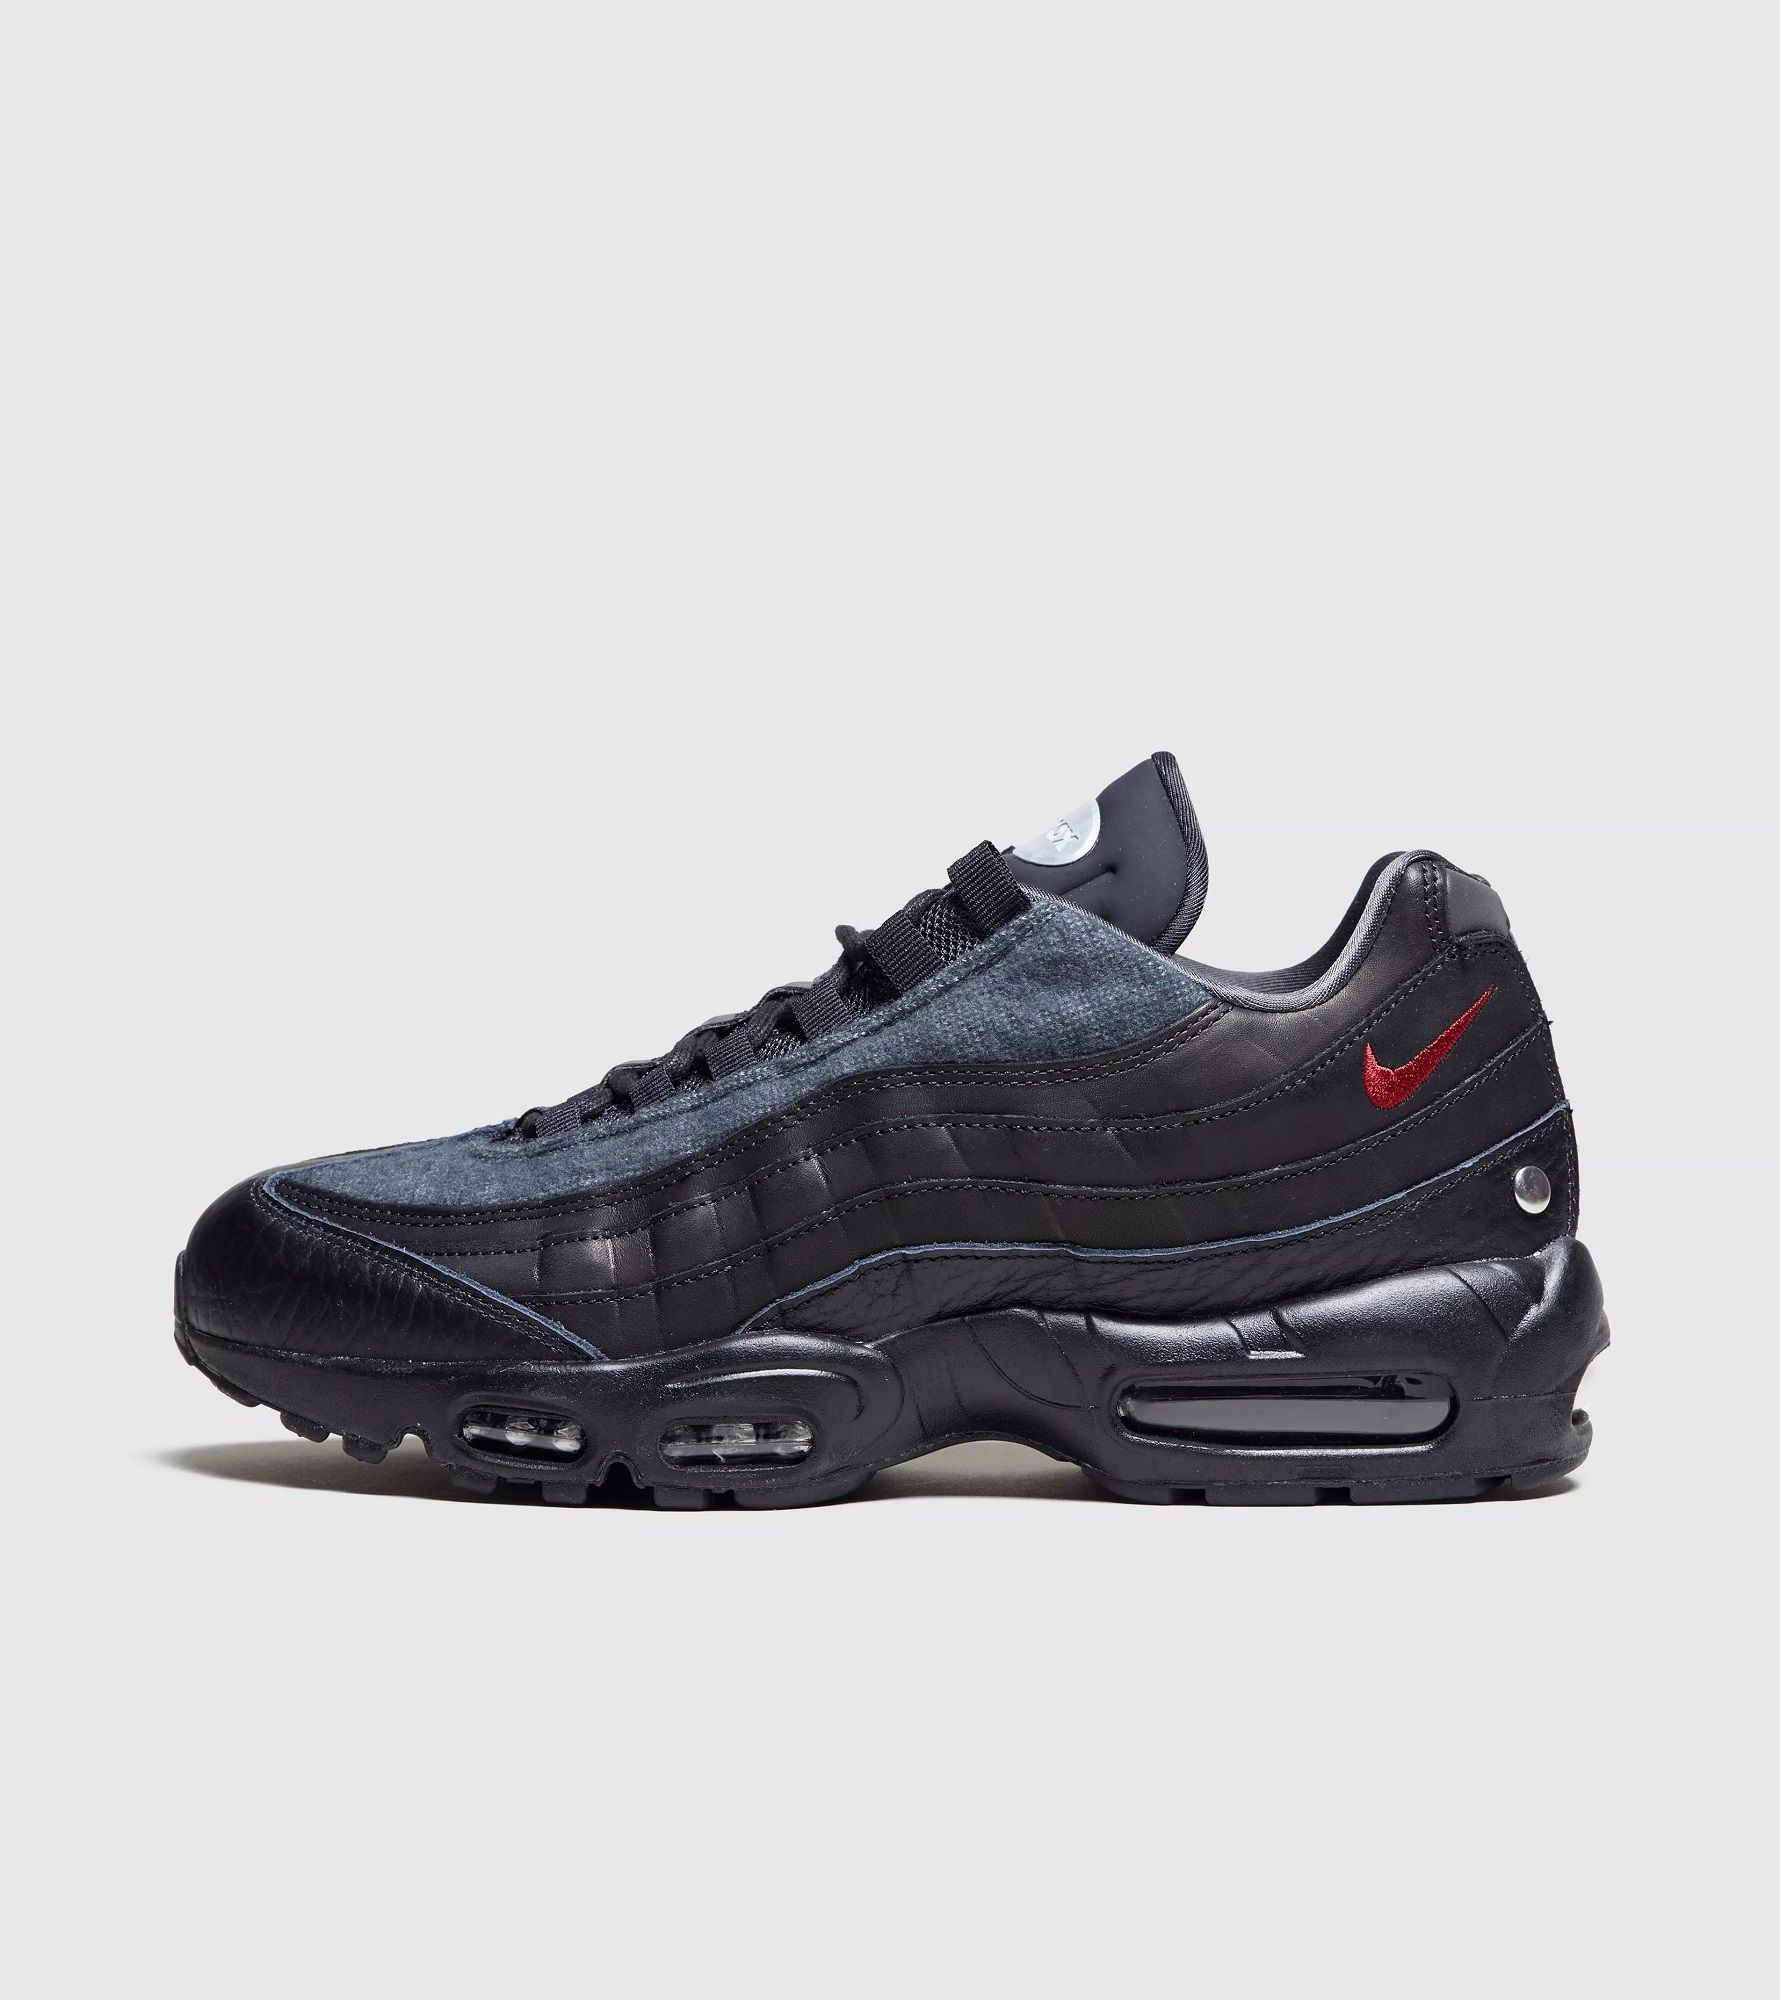 Nike Air Max 95 NRG Black Team Red Anthracite